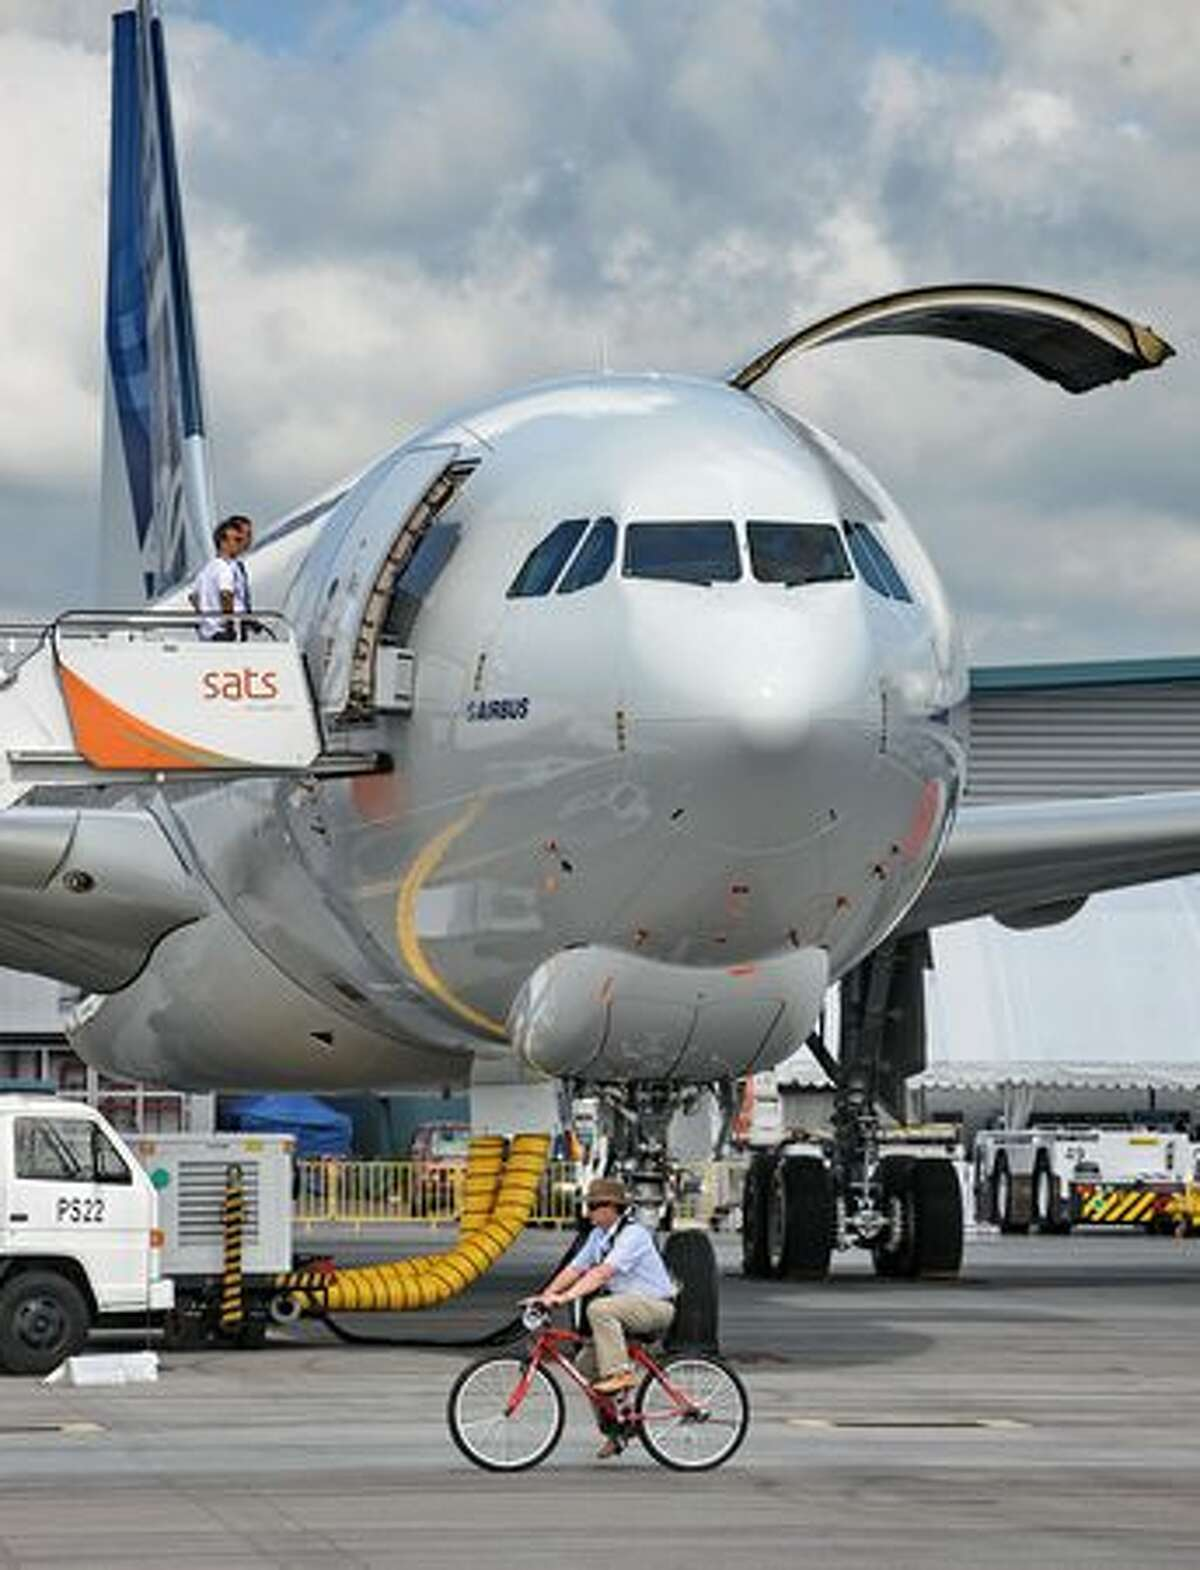 A cyclist rides past an Airbus A330-200F cargo plane for the static display at the Singapore Airshow on Feb. 1, 2010.